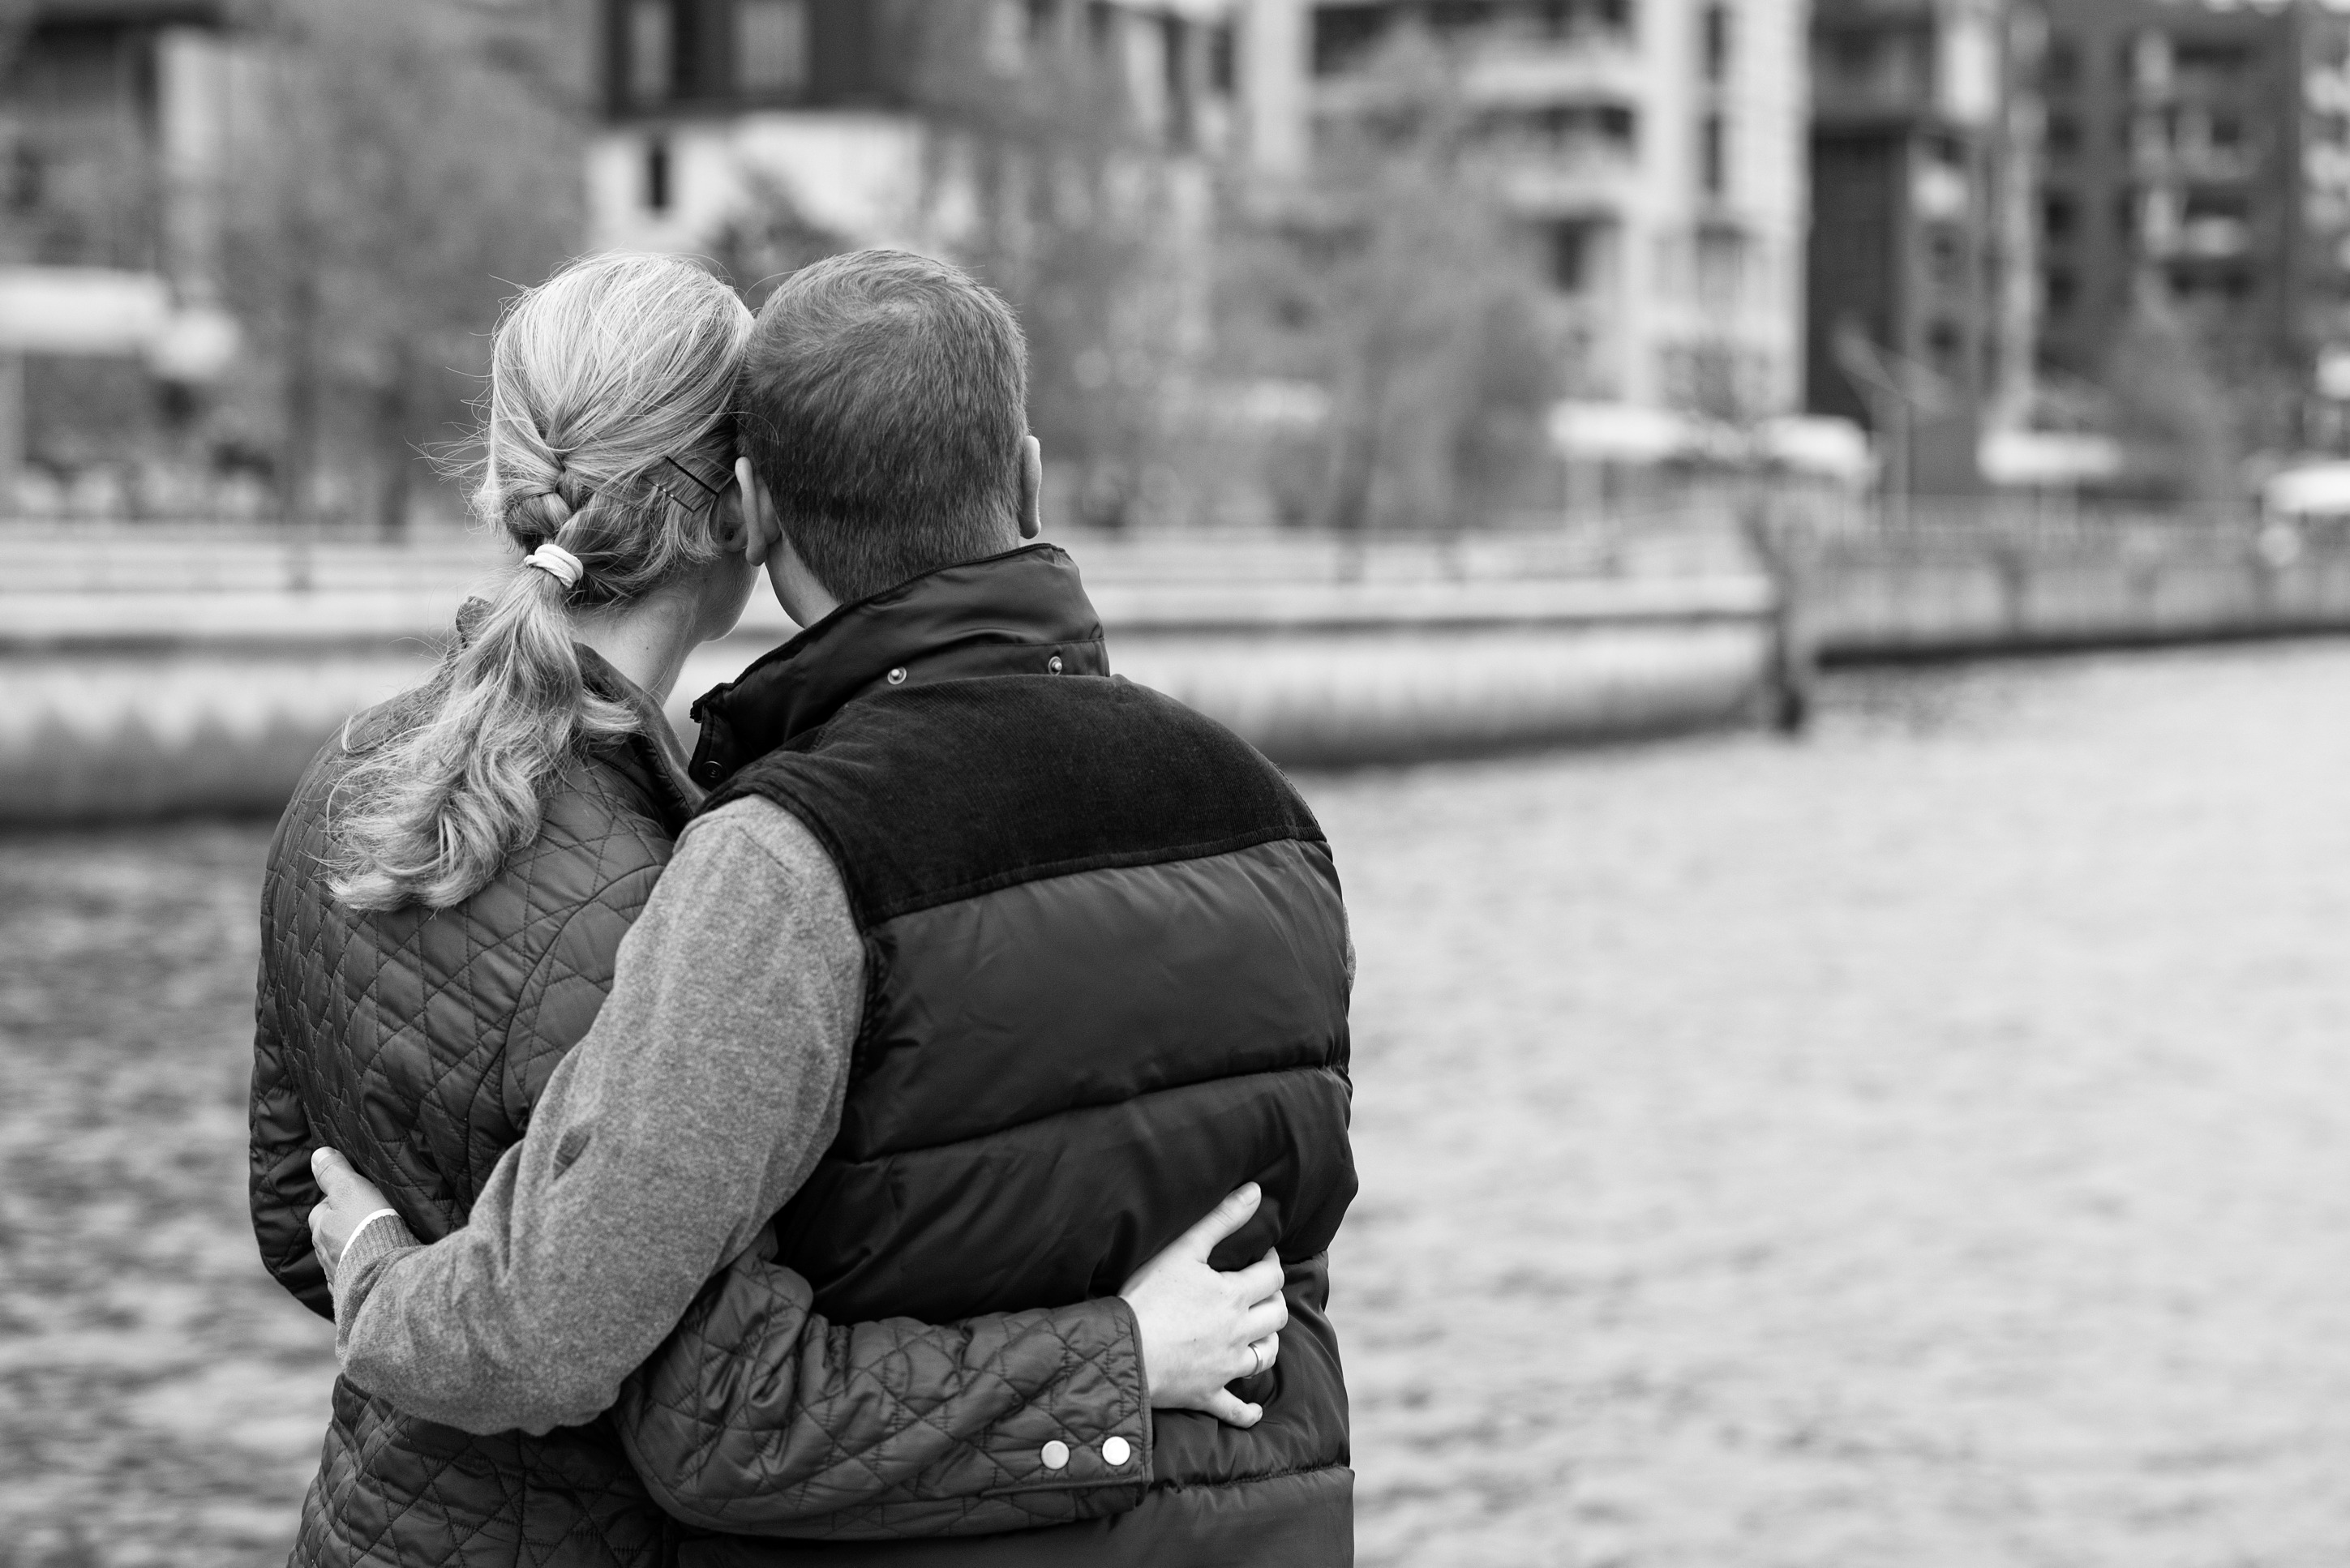 Grayscale Photography of Man and Woman Holding Each Other